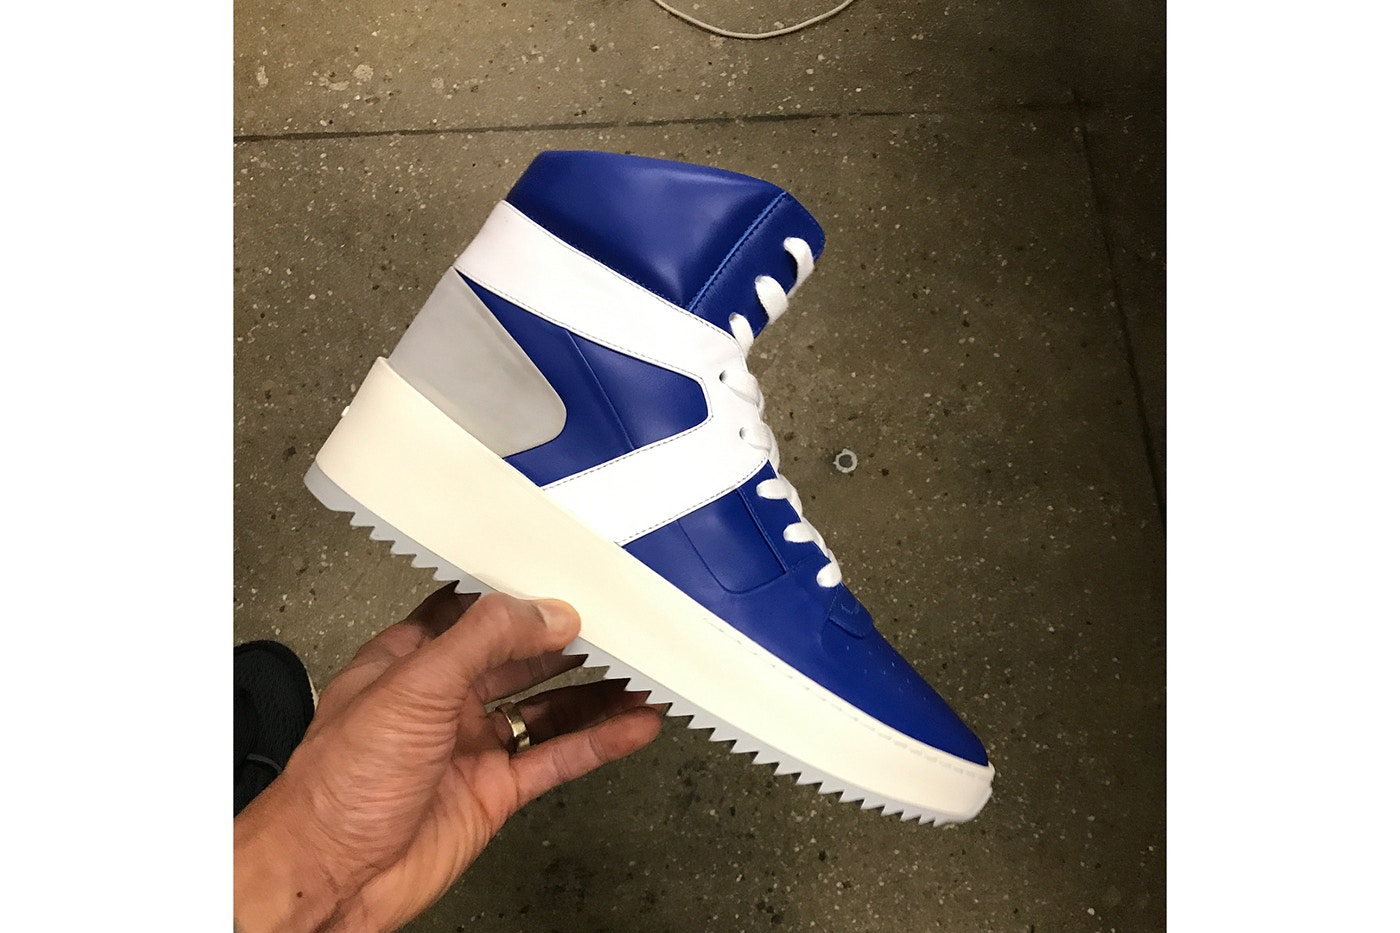 http_hypebeast.com_image_2017_10_jerry-lorenzo-teases-los-angeles-dodgers-inspired-sneaker-1.jpeg